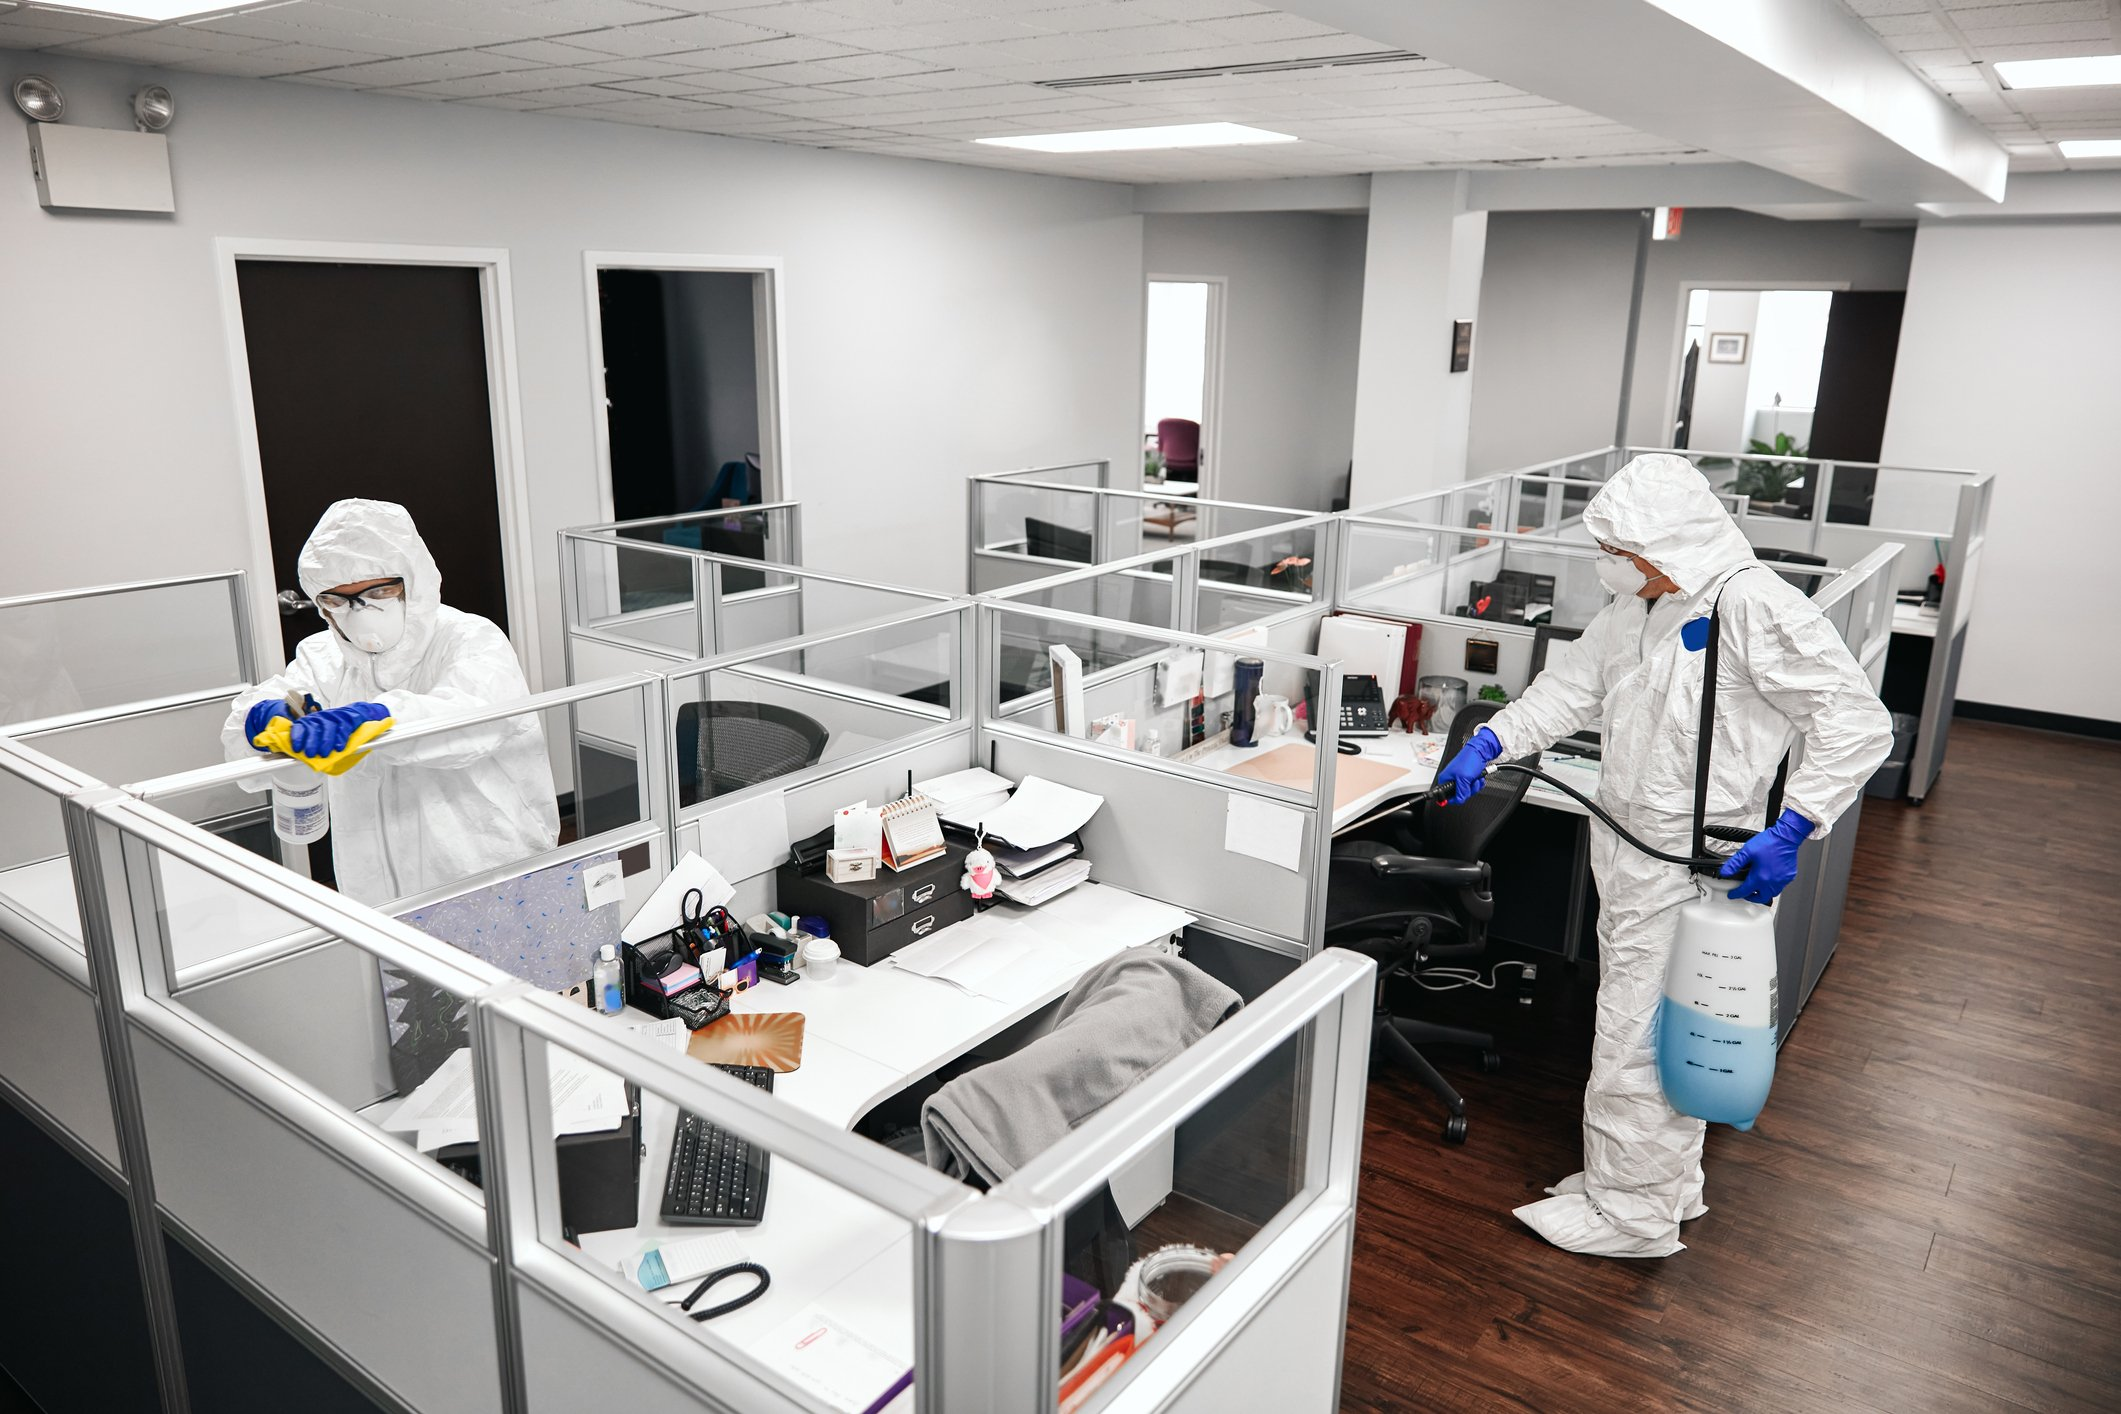 Offices and workspaces will be cleaned and disinfected much more often. (iStock Photo)